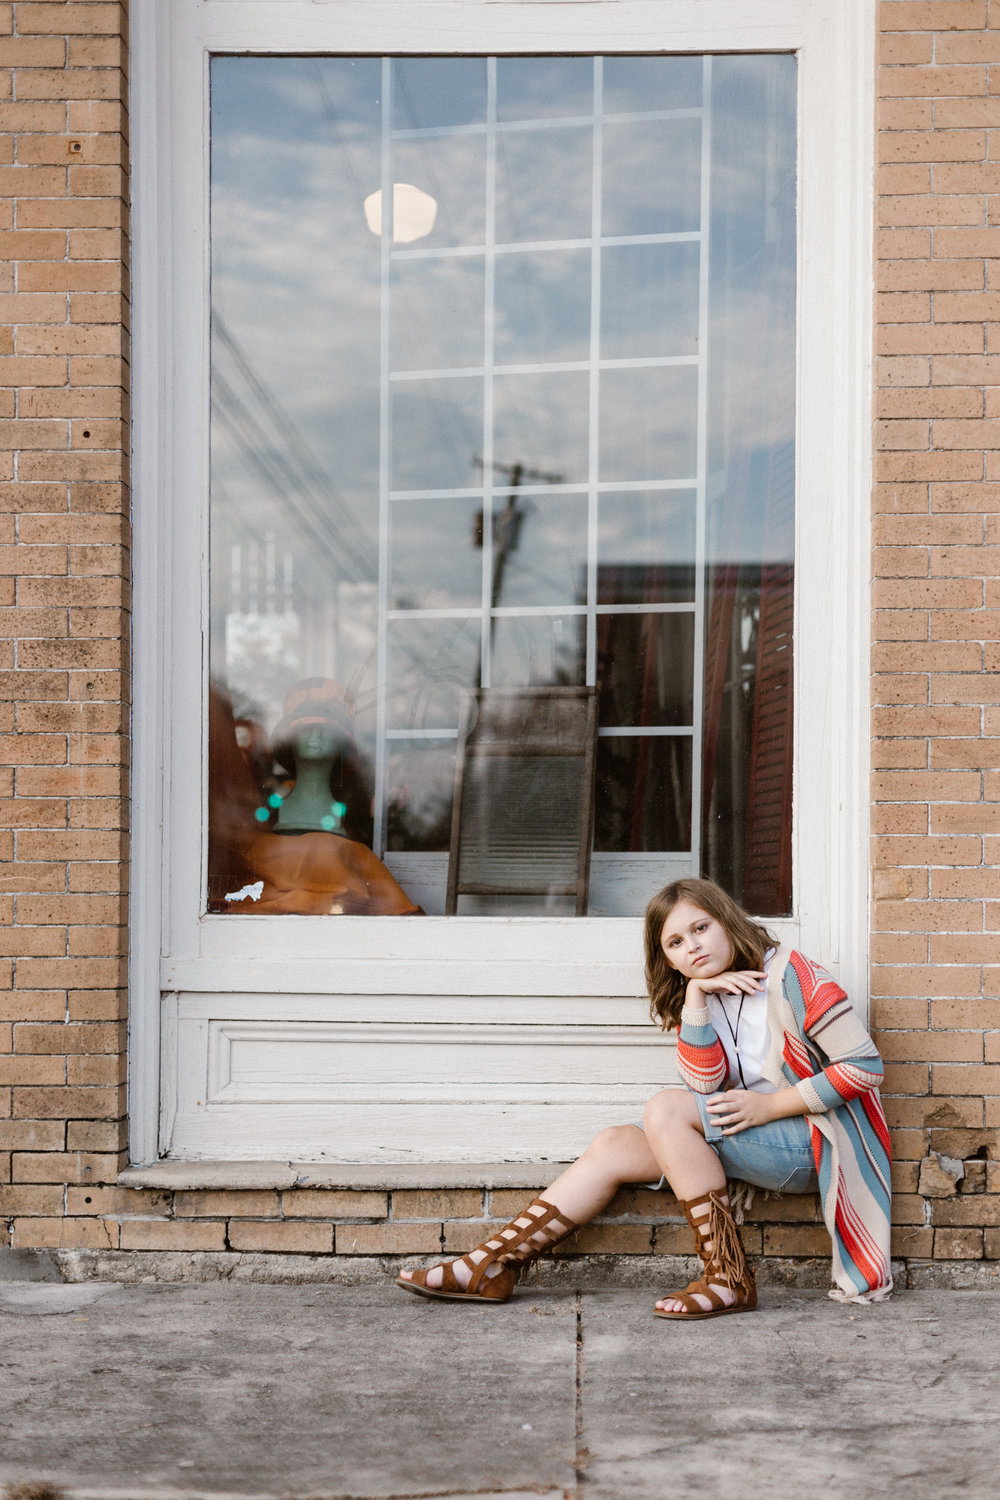 The reflection of the sky and utility pole in the side window of the DA Varnado museum adds to the drama of this tween portrait captured by Chris Ginn Photography during one of his Franklinton tween portrait sessions.